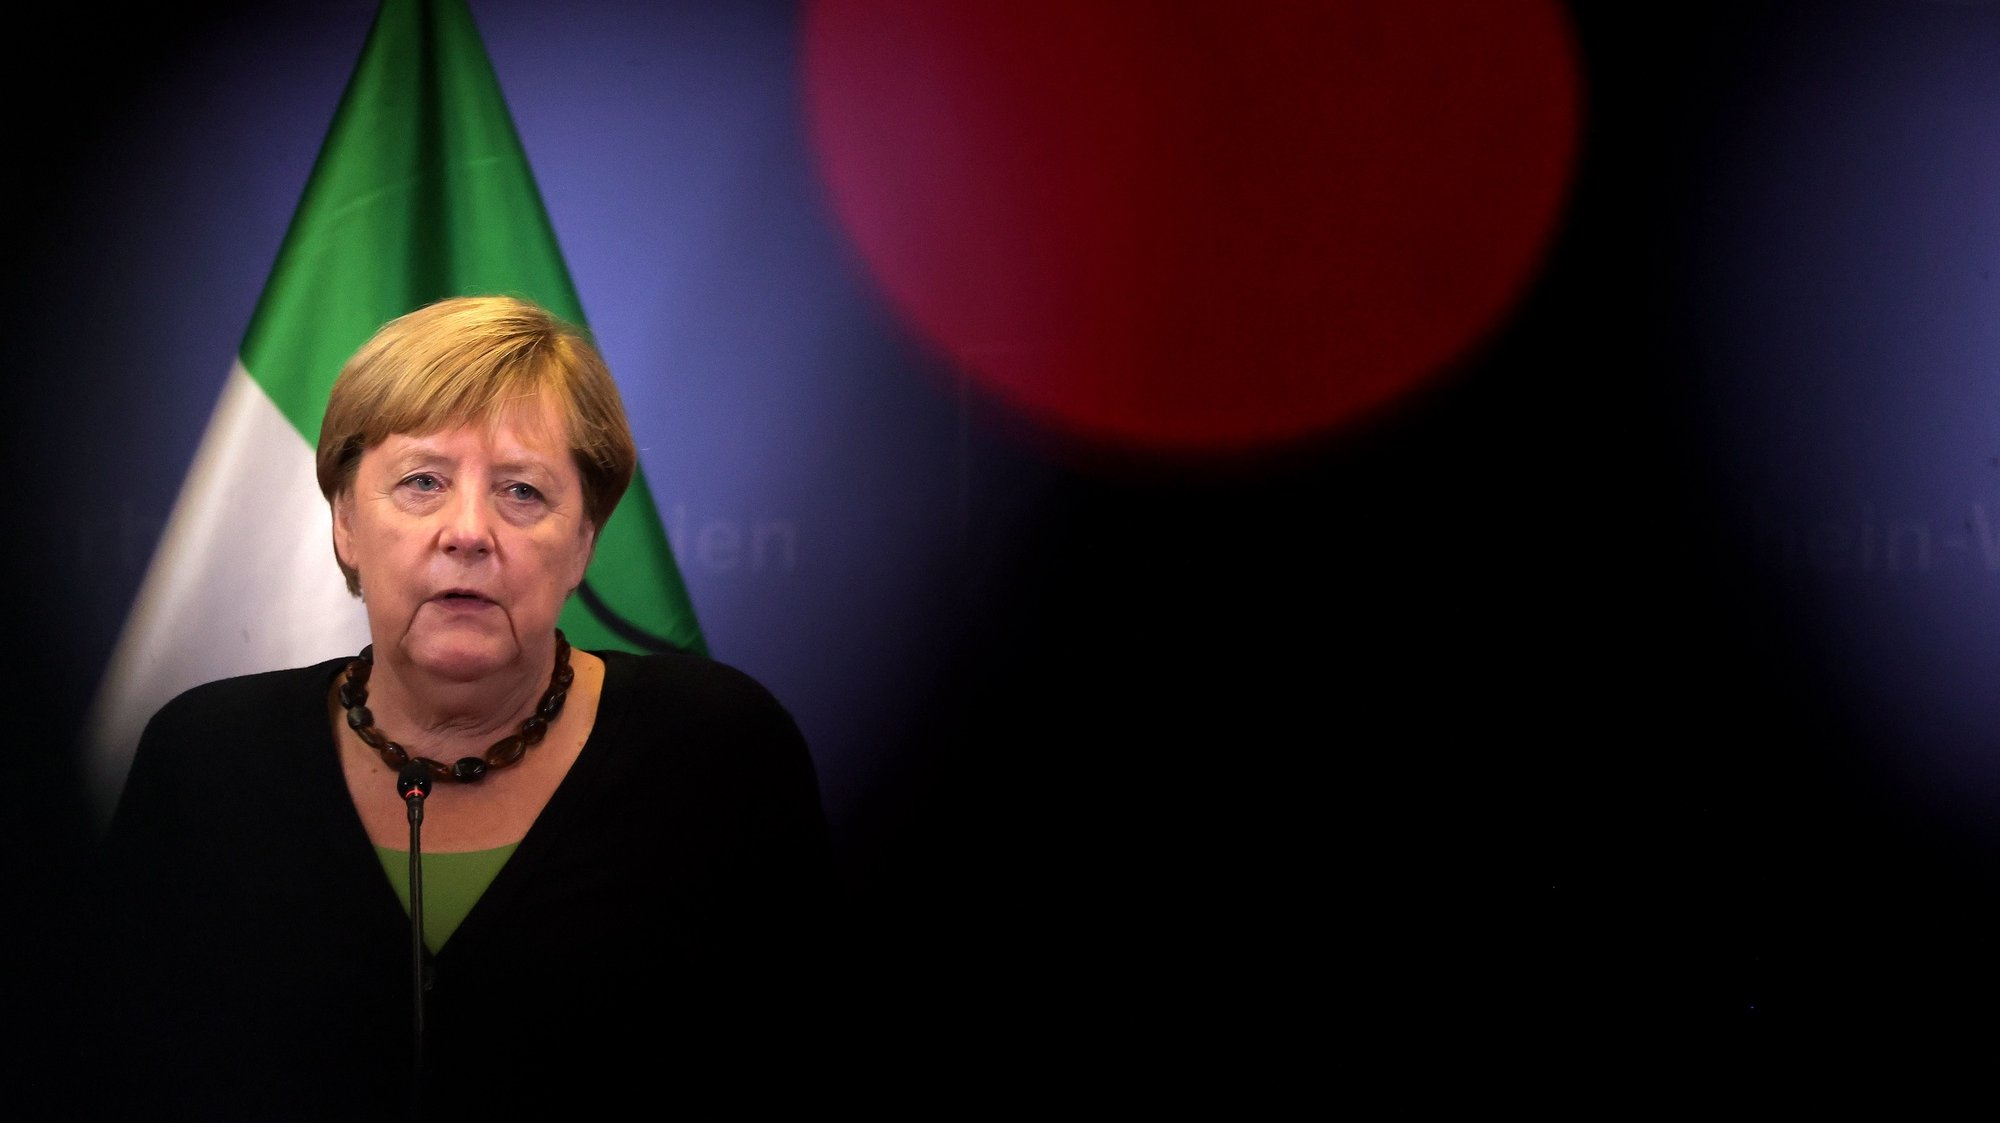 epa09449458 German Chancellor Angela Merkel attends a press conference after visit flood-affected regions in North Rhine-Westphalia in Hagen, Germany, 05 September 2021. Large parts of western Germany and central Europe were hit by flash floods in the night of 14 to 15 July, following days of continuous rain that destroyed buildings and swept away cars. Laschet is the top candidate for chancellor of the Christian Democratic Union (CDU) party in the upcoming September 2021 federal election.  EPA/FRIEDEMANN VOGEL